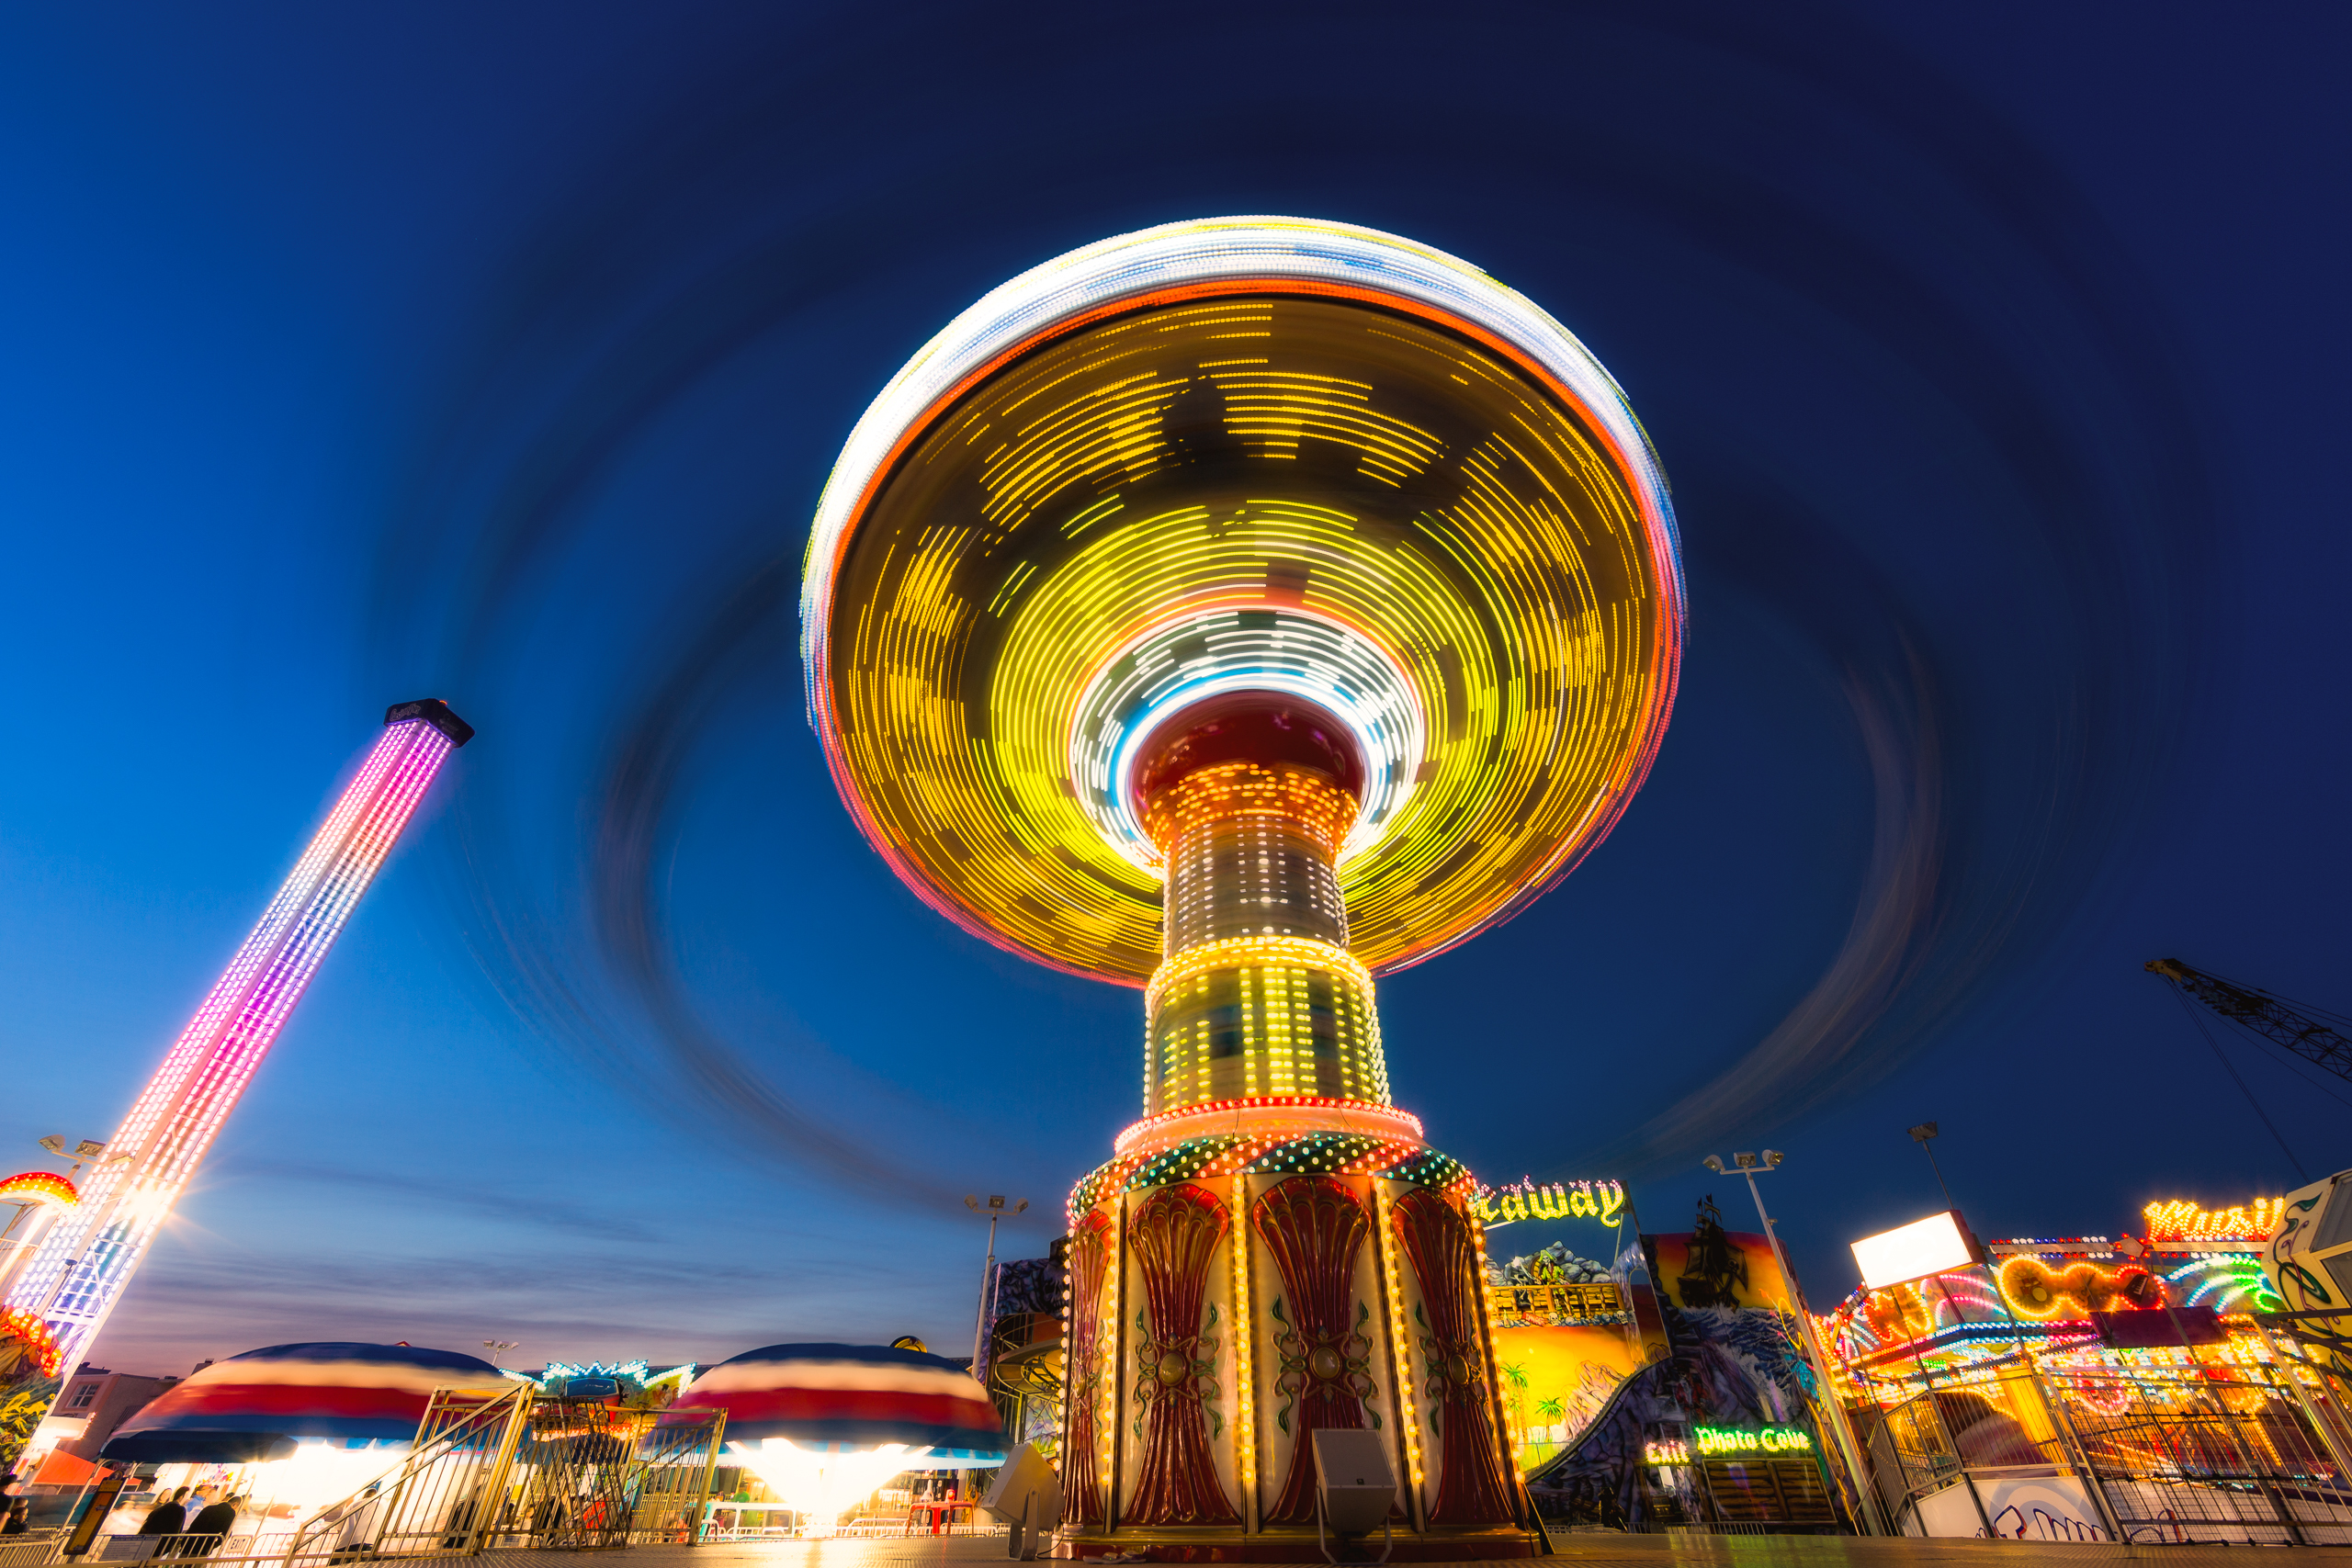 Long Exposure Carnival Swing Photography at Casino Pier ...